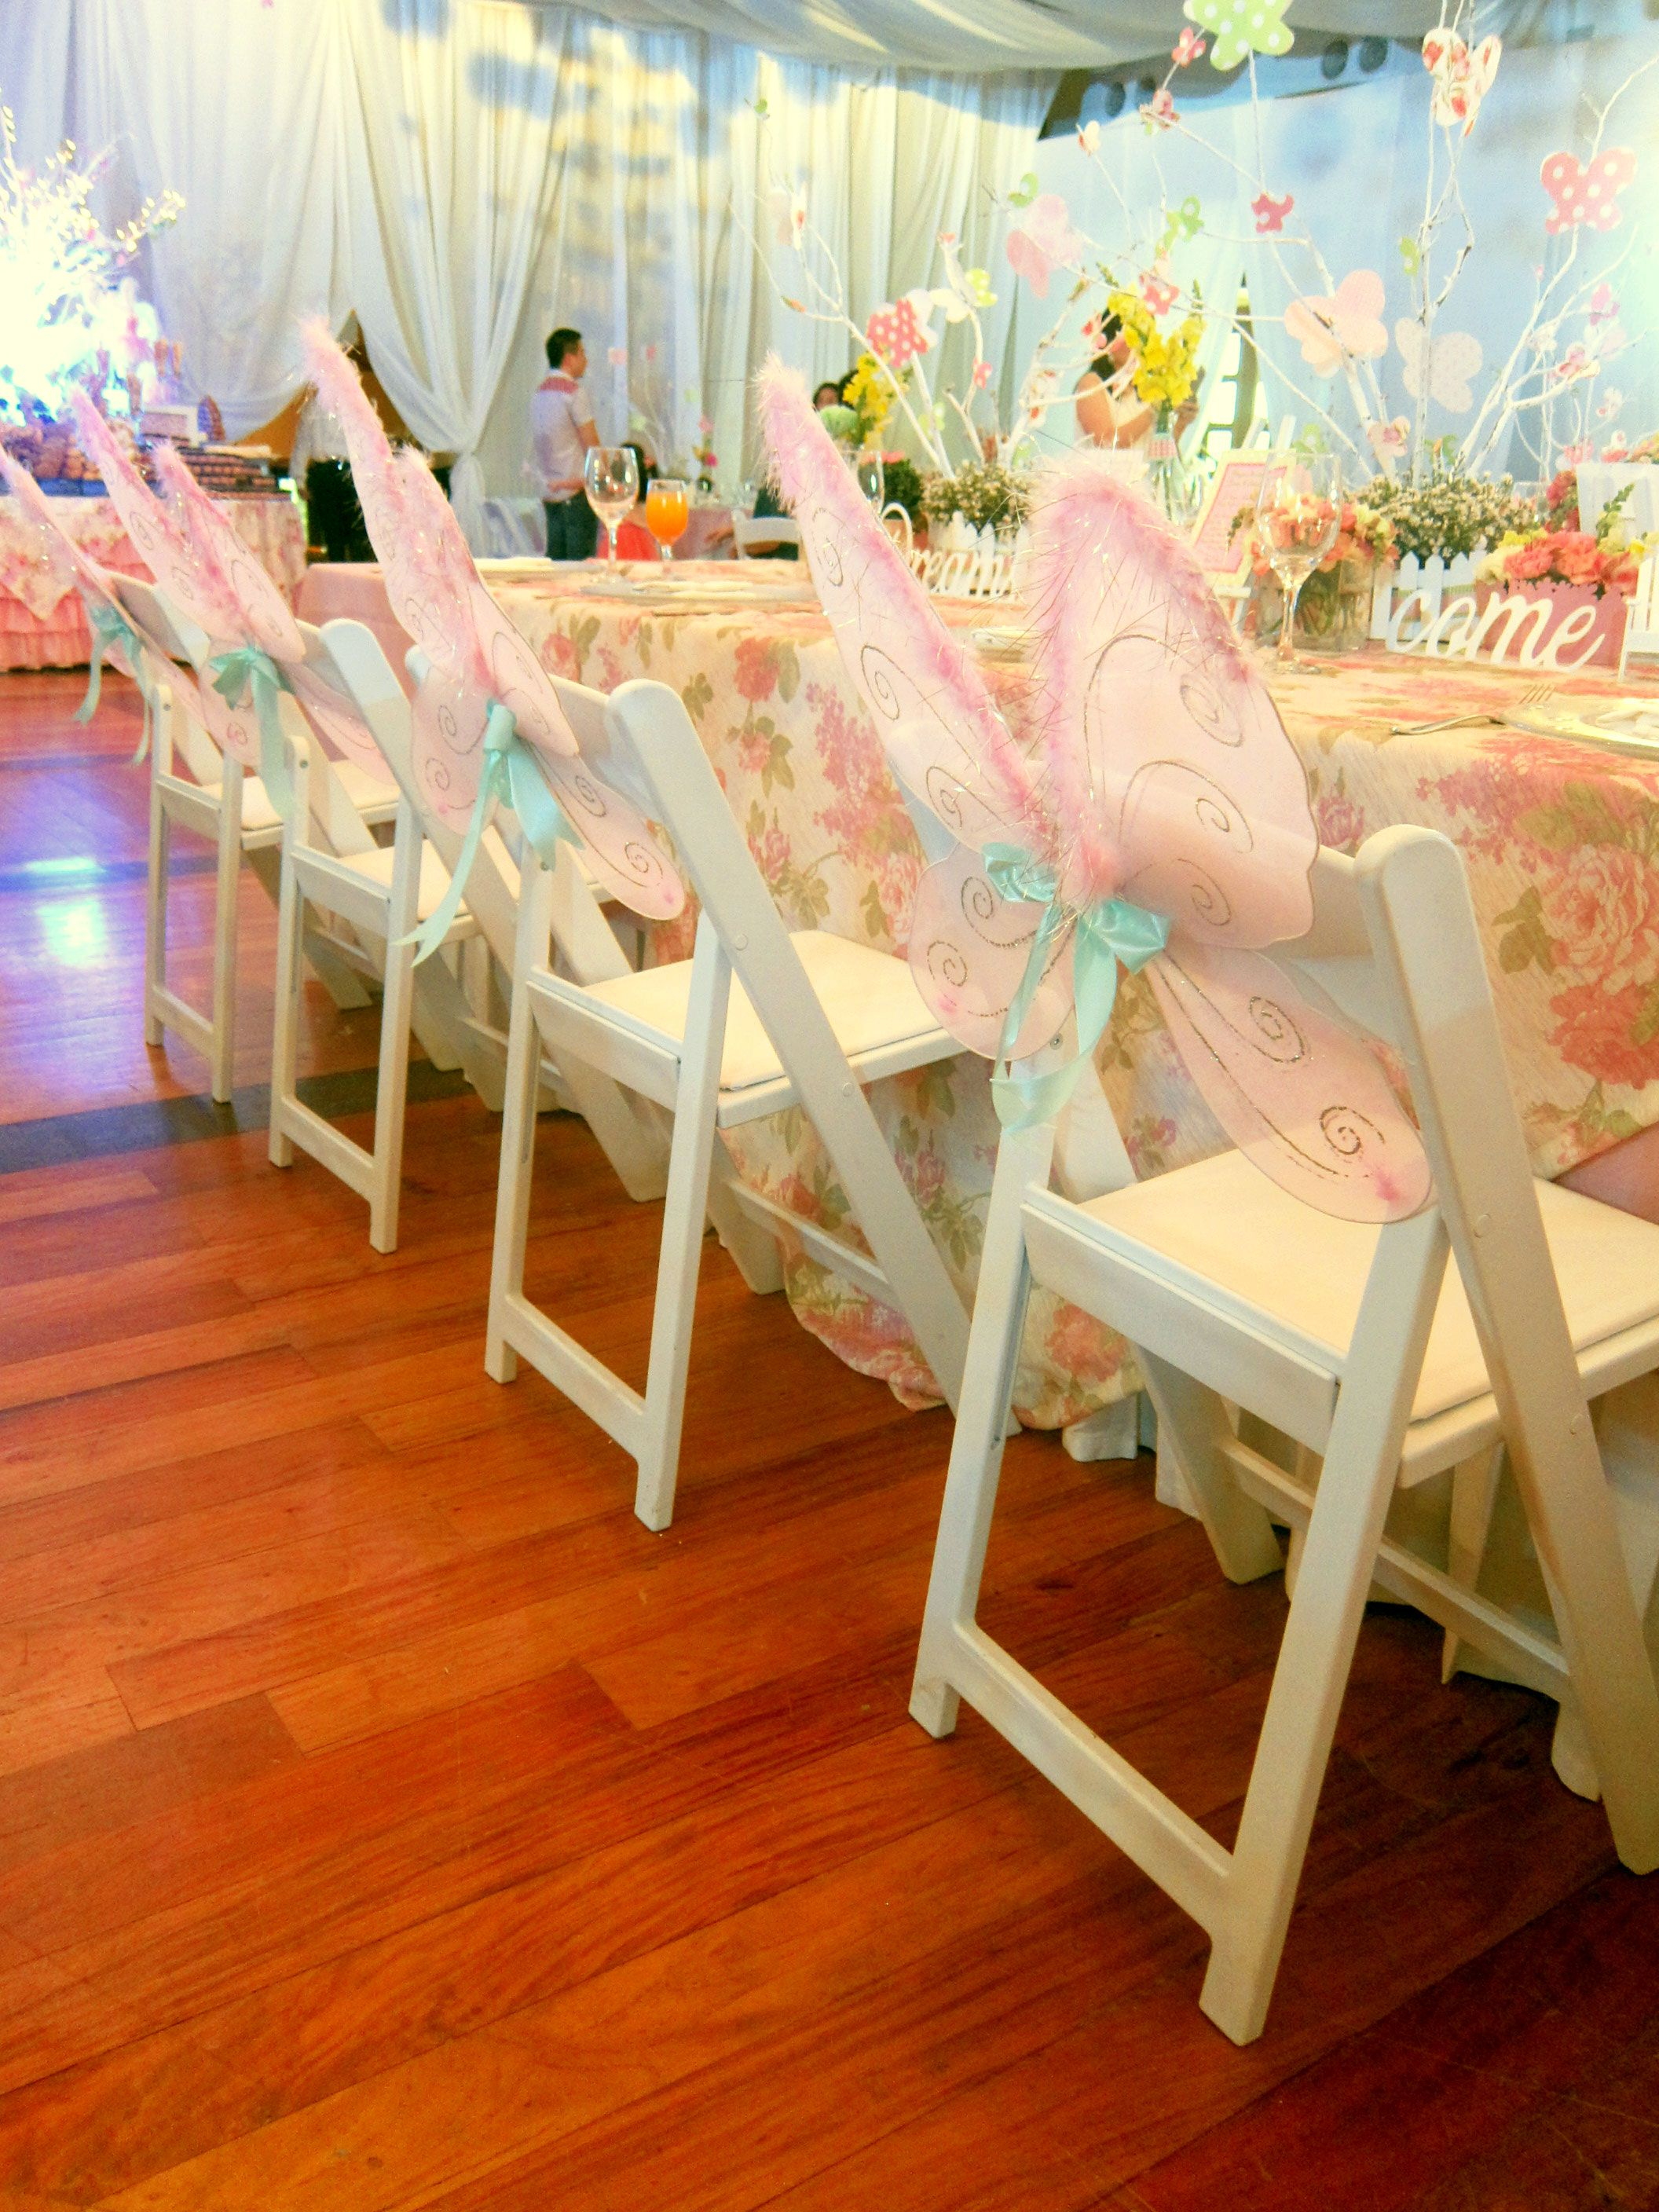 Furniture shops in manila - Reserv S White Folding Chairs At A Fairy Garden Themed Kiddie Party By Planners Plus At The